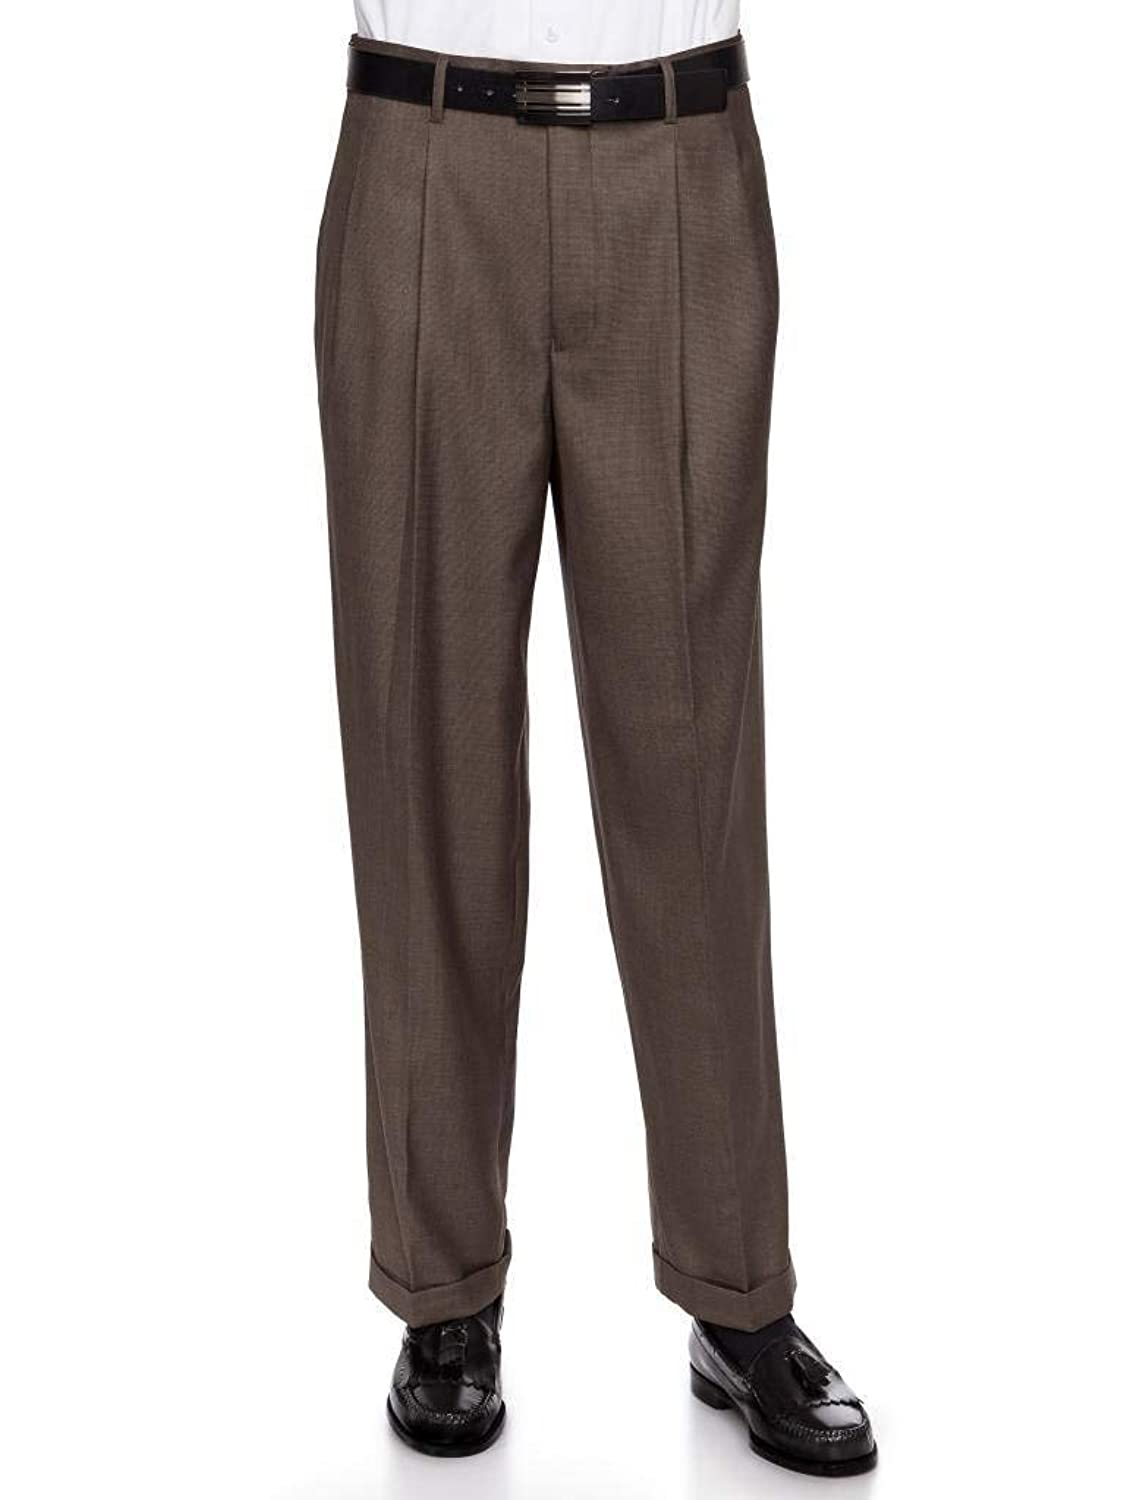 57aad7a214 GENTLEMAN'S FAVORITE These handsome and polished dress pants are a  must-have for every guy. You'll be reaching for them every time you want to  present your ...